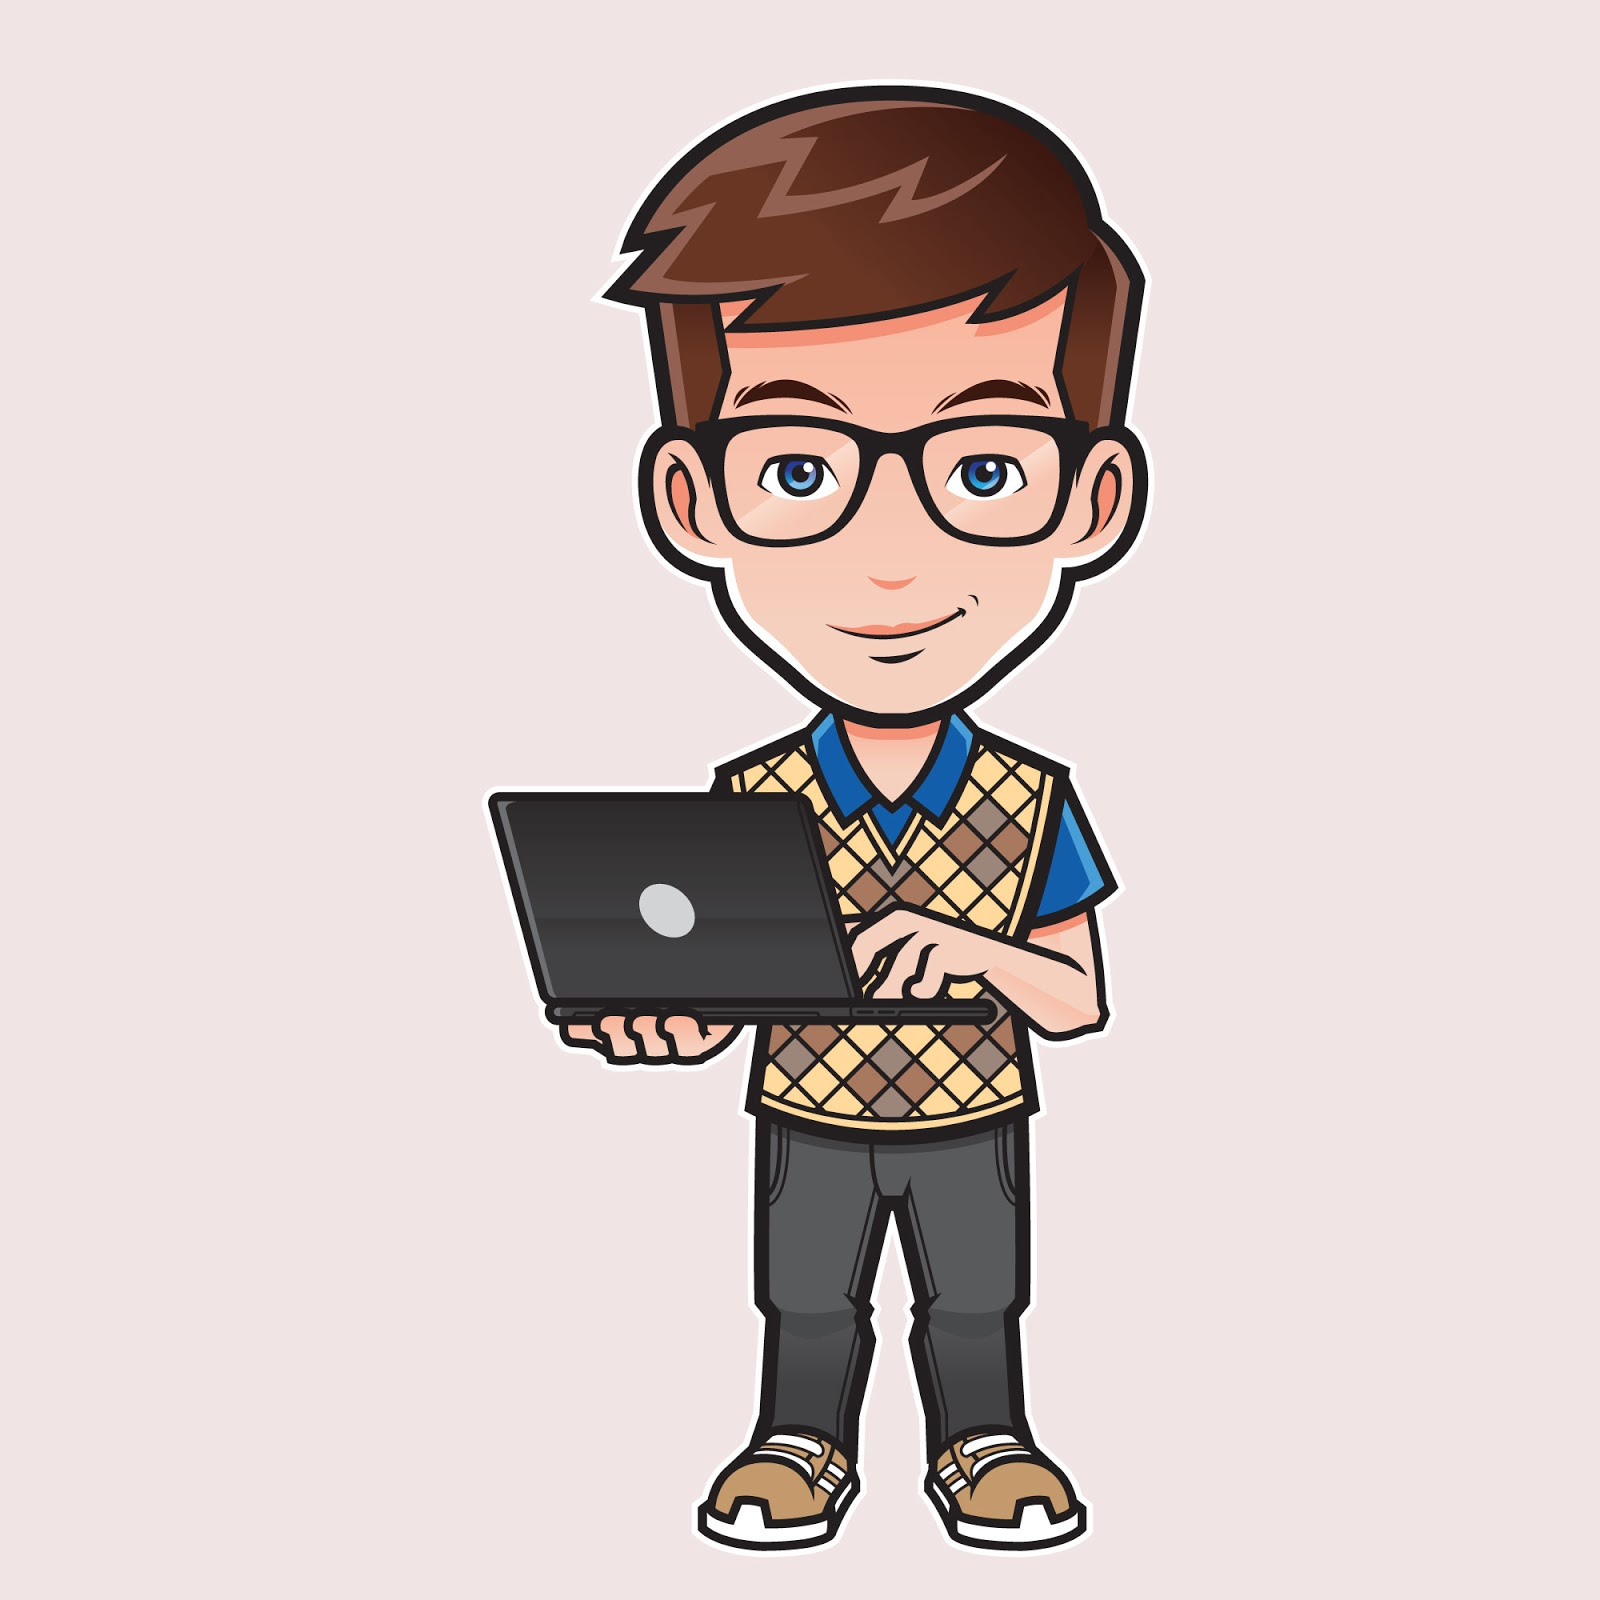 Computer Expert Illustration Free Download Vector CDR, AI, EPS and PNG Formats